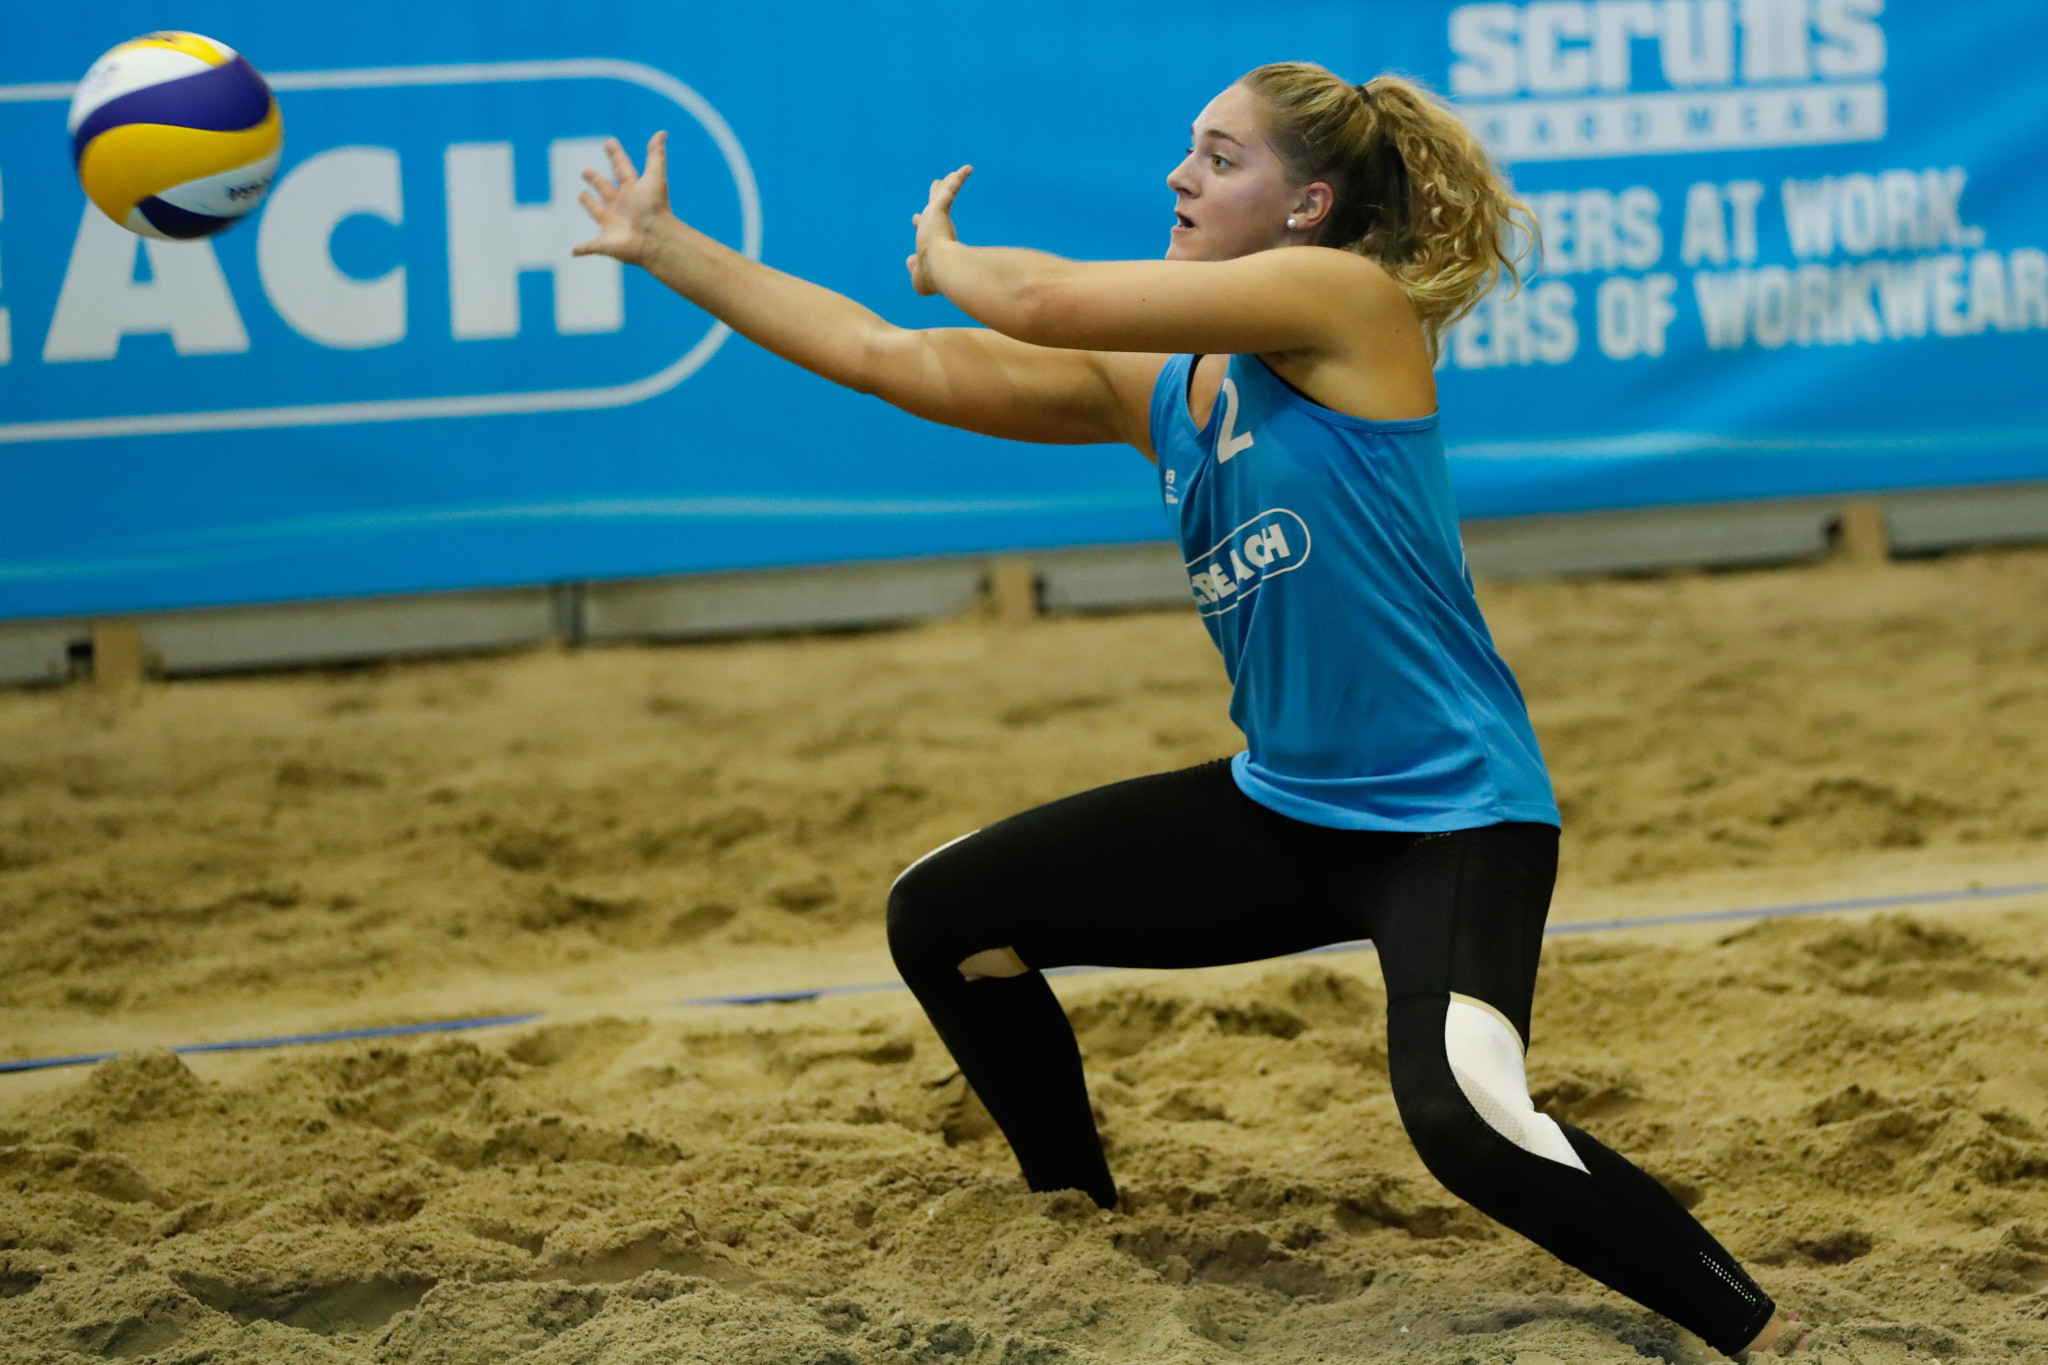 Margaux Carrere, pictured, and partner Alexia Richard are safely through ©FIVB